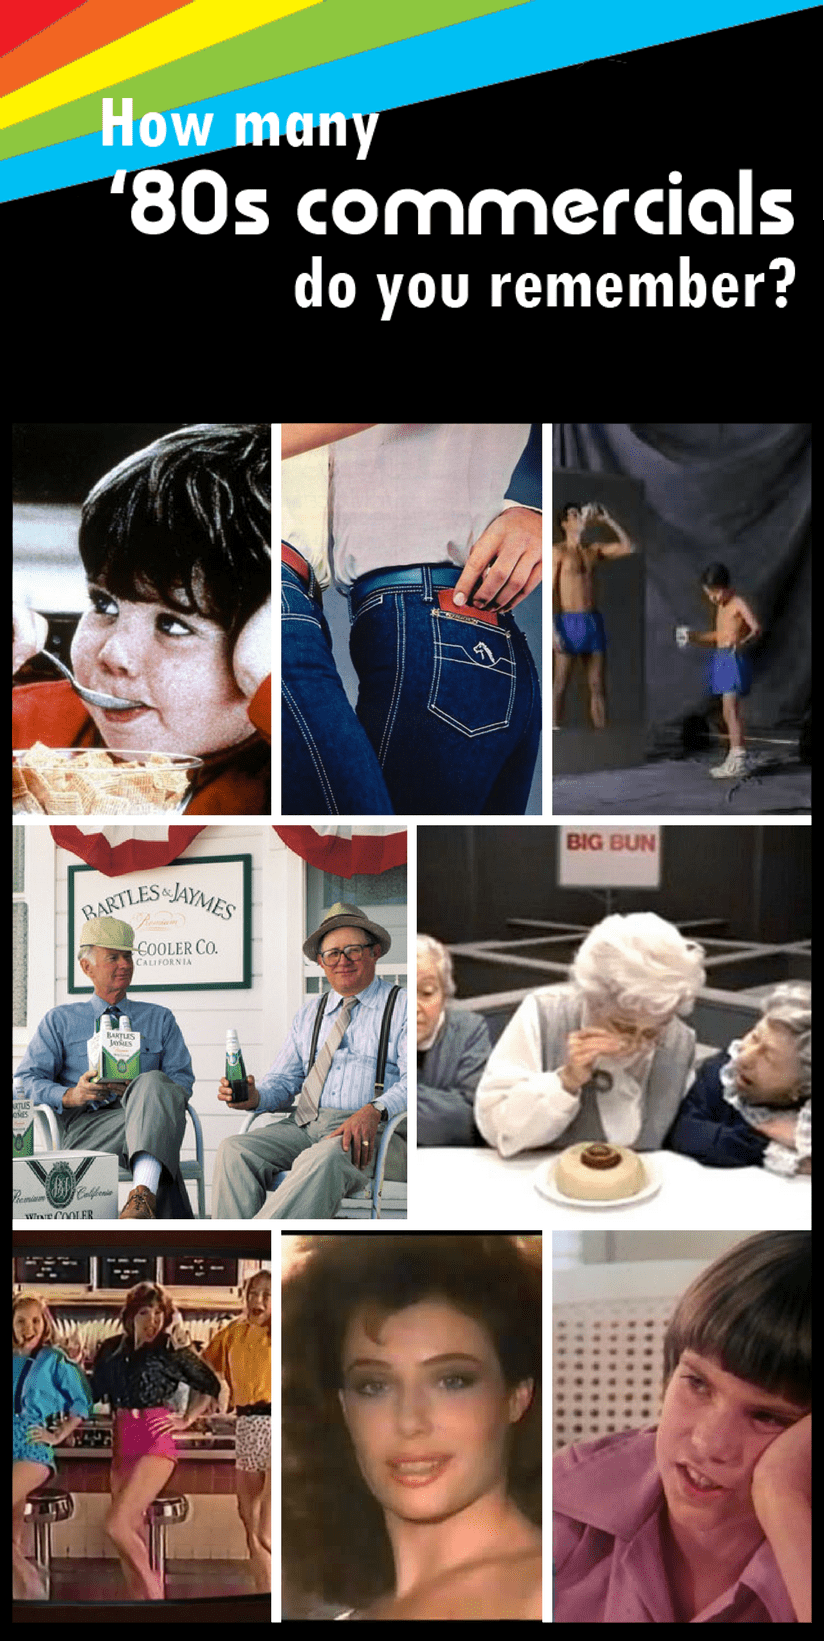 famous commercials from the 1980s